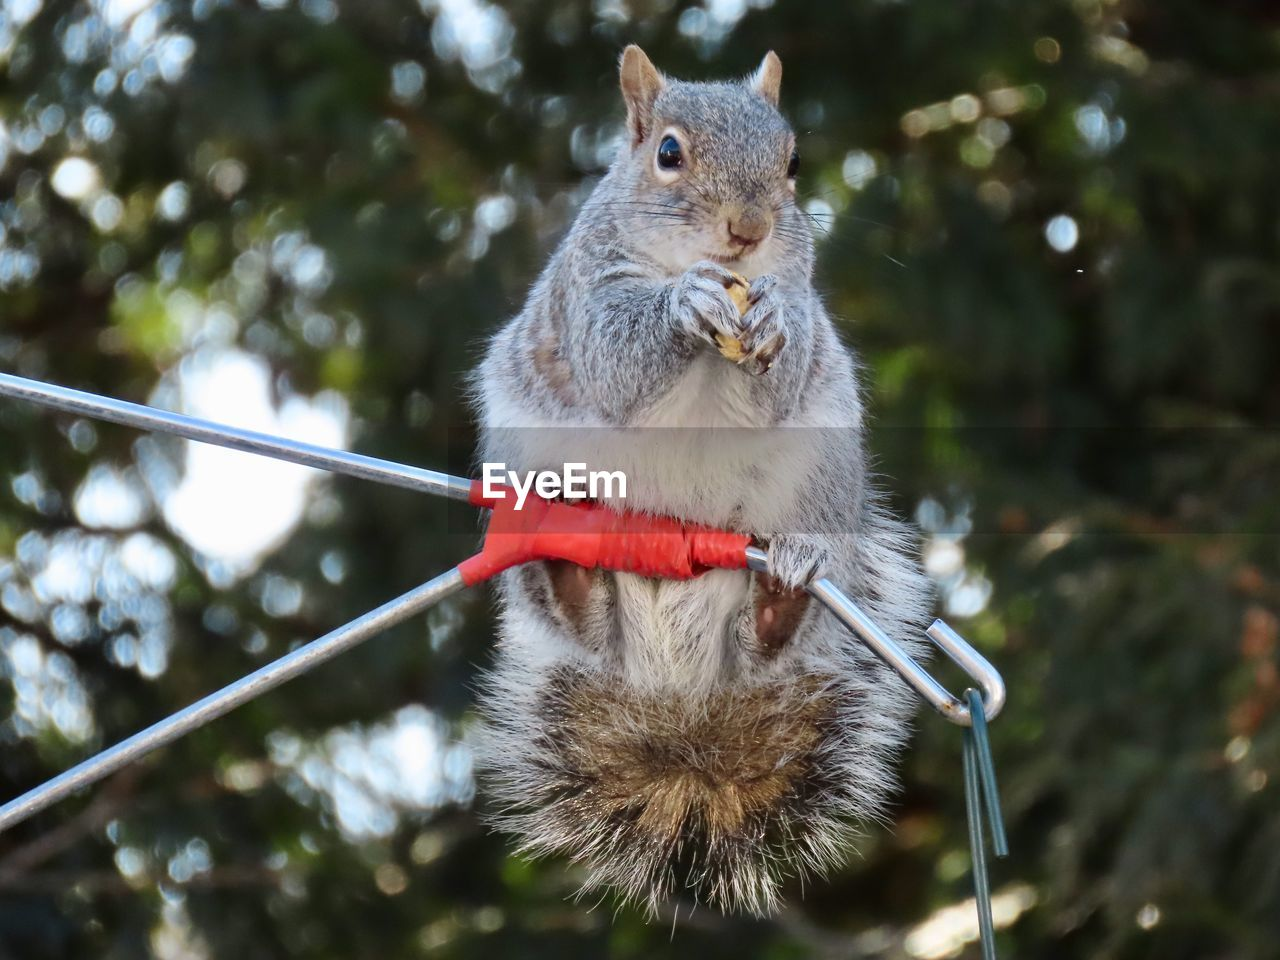 animal themes, animal, mammal, focus on foreground, one animal, rodent, vertebrate, animal wildlife, no people, animals in the wild, day, tree, nature, close-up, outdoors, eating, plant, squirrel, holding, low angle view, whisker